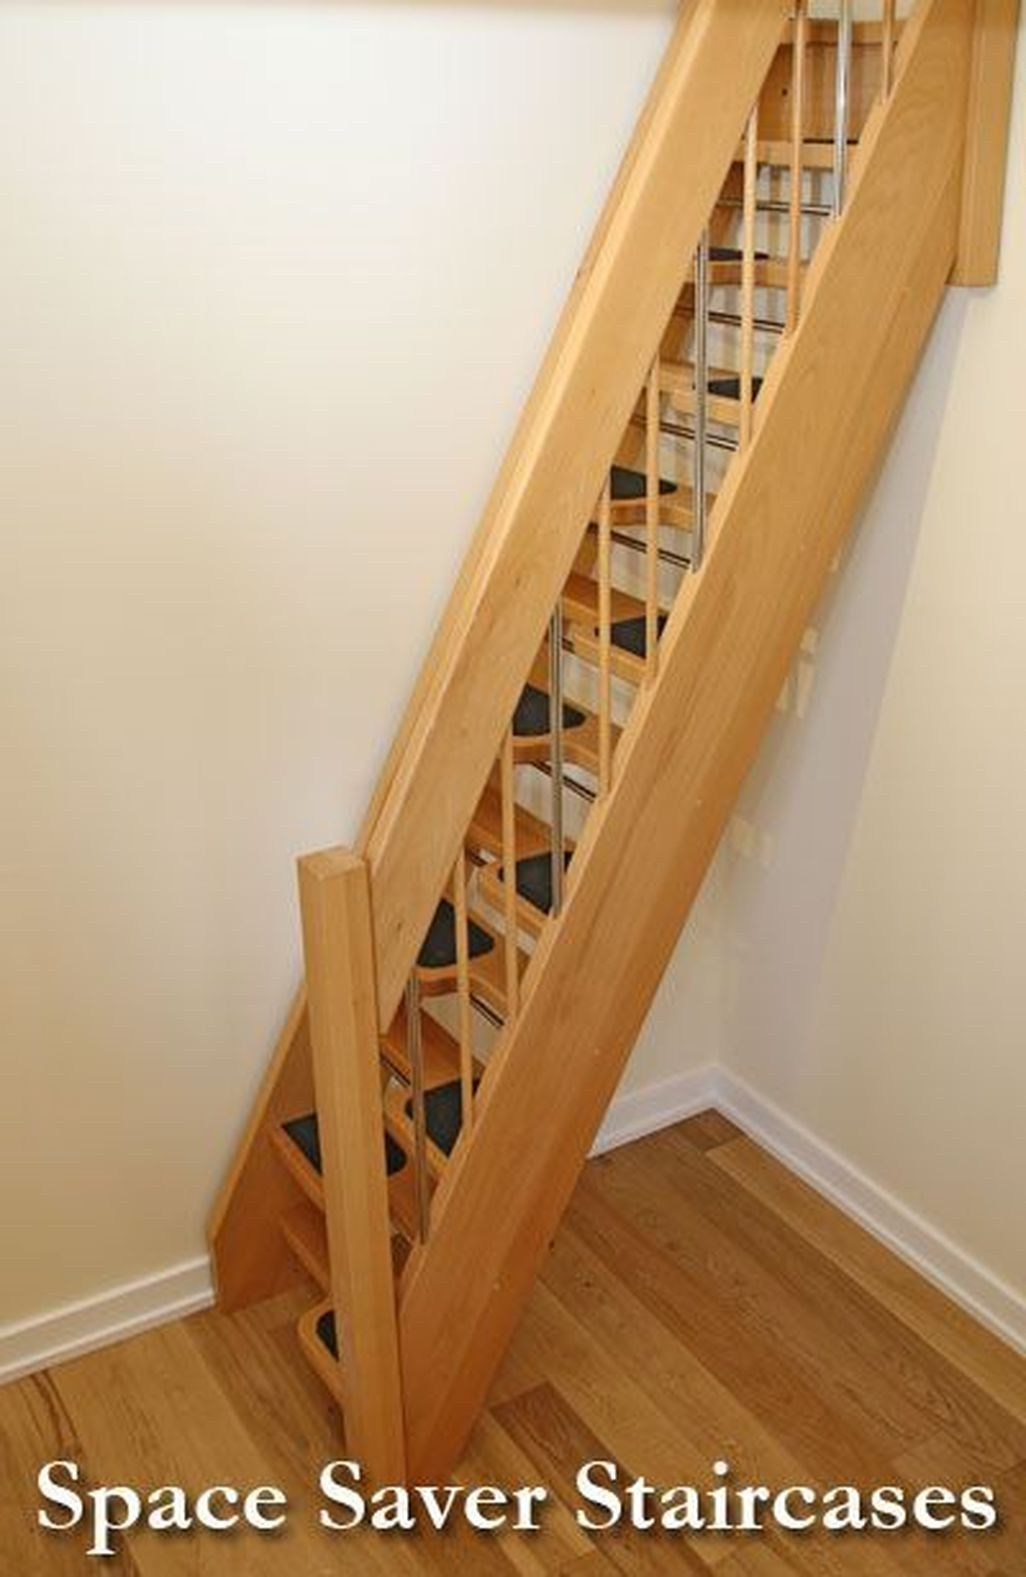 Best Simple Small Stairs To Inspire 26 Space Saver Staircase 640 x 480